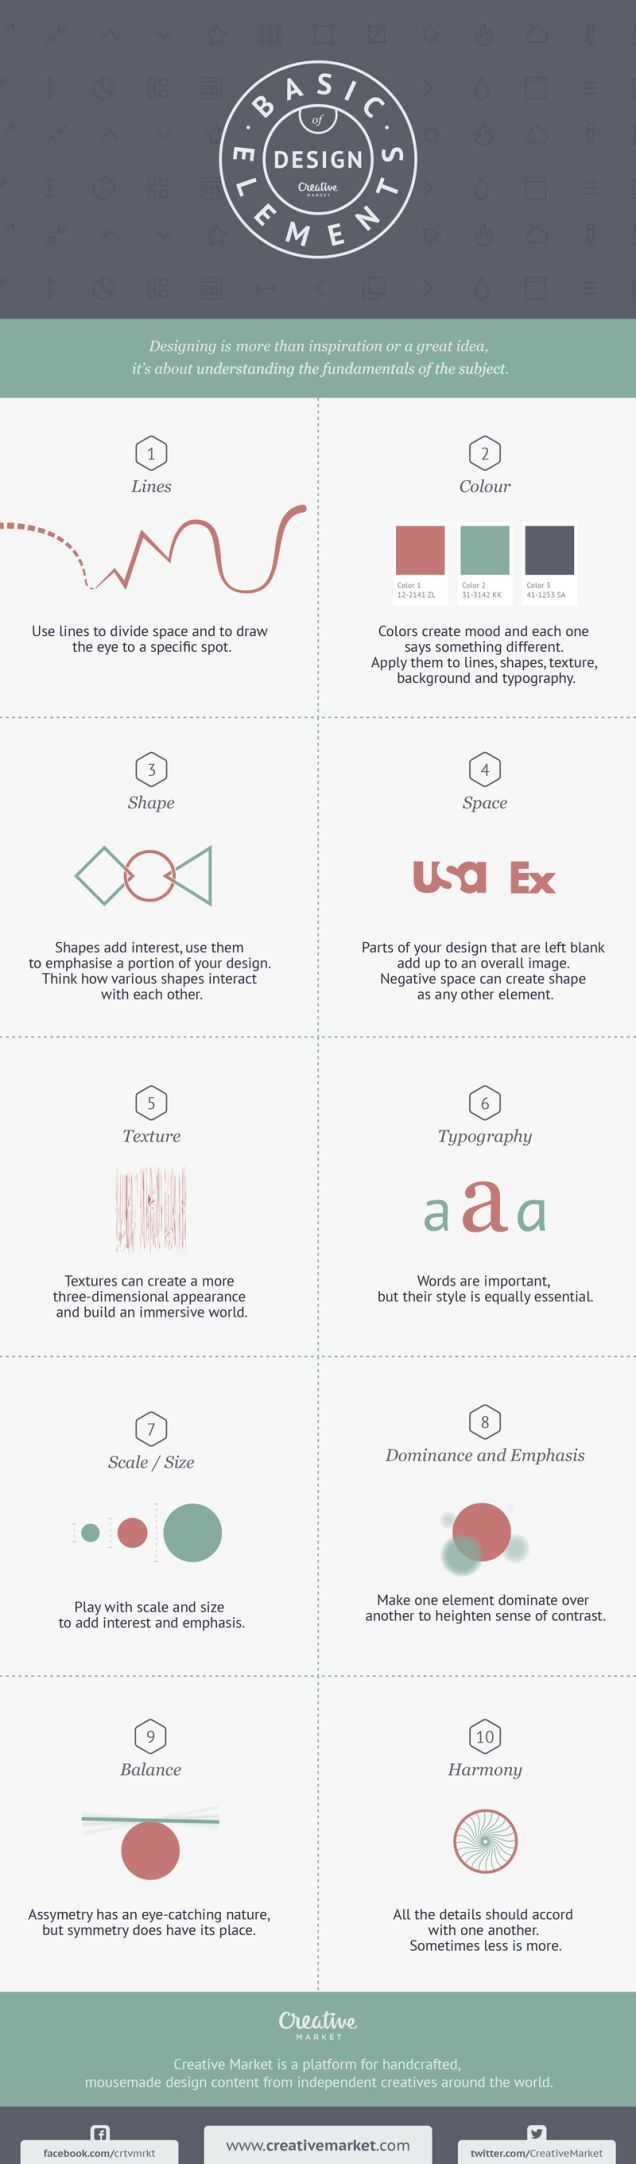 This Graphic Teaches You the Basic Elements of Good Design